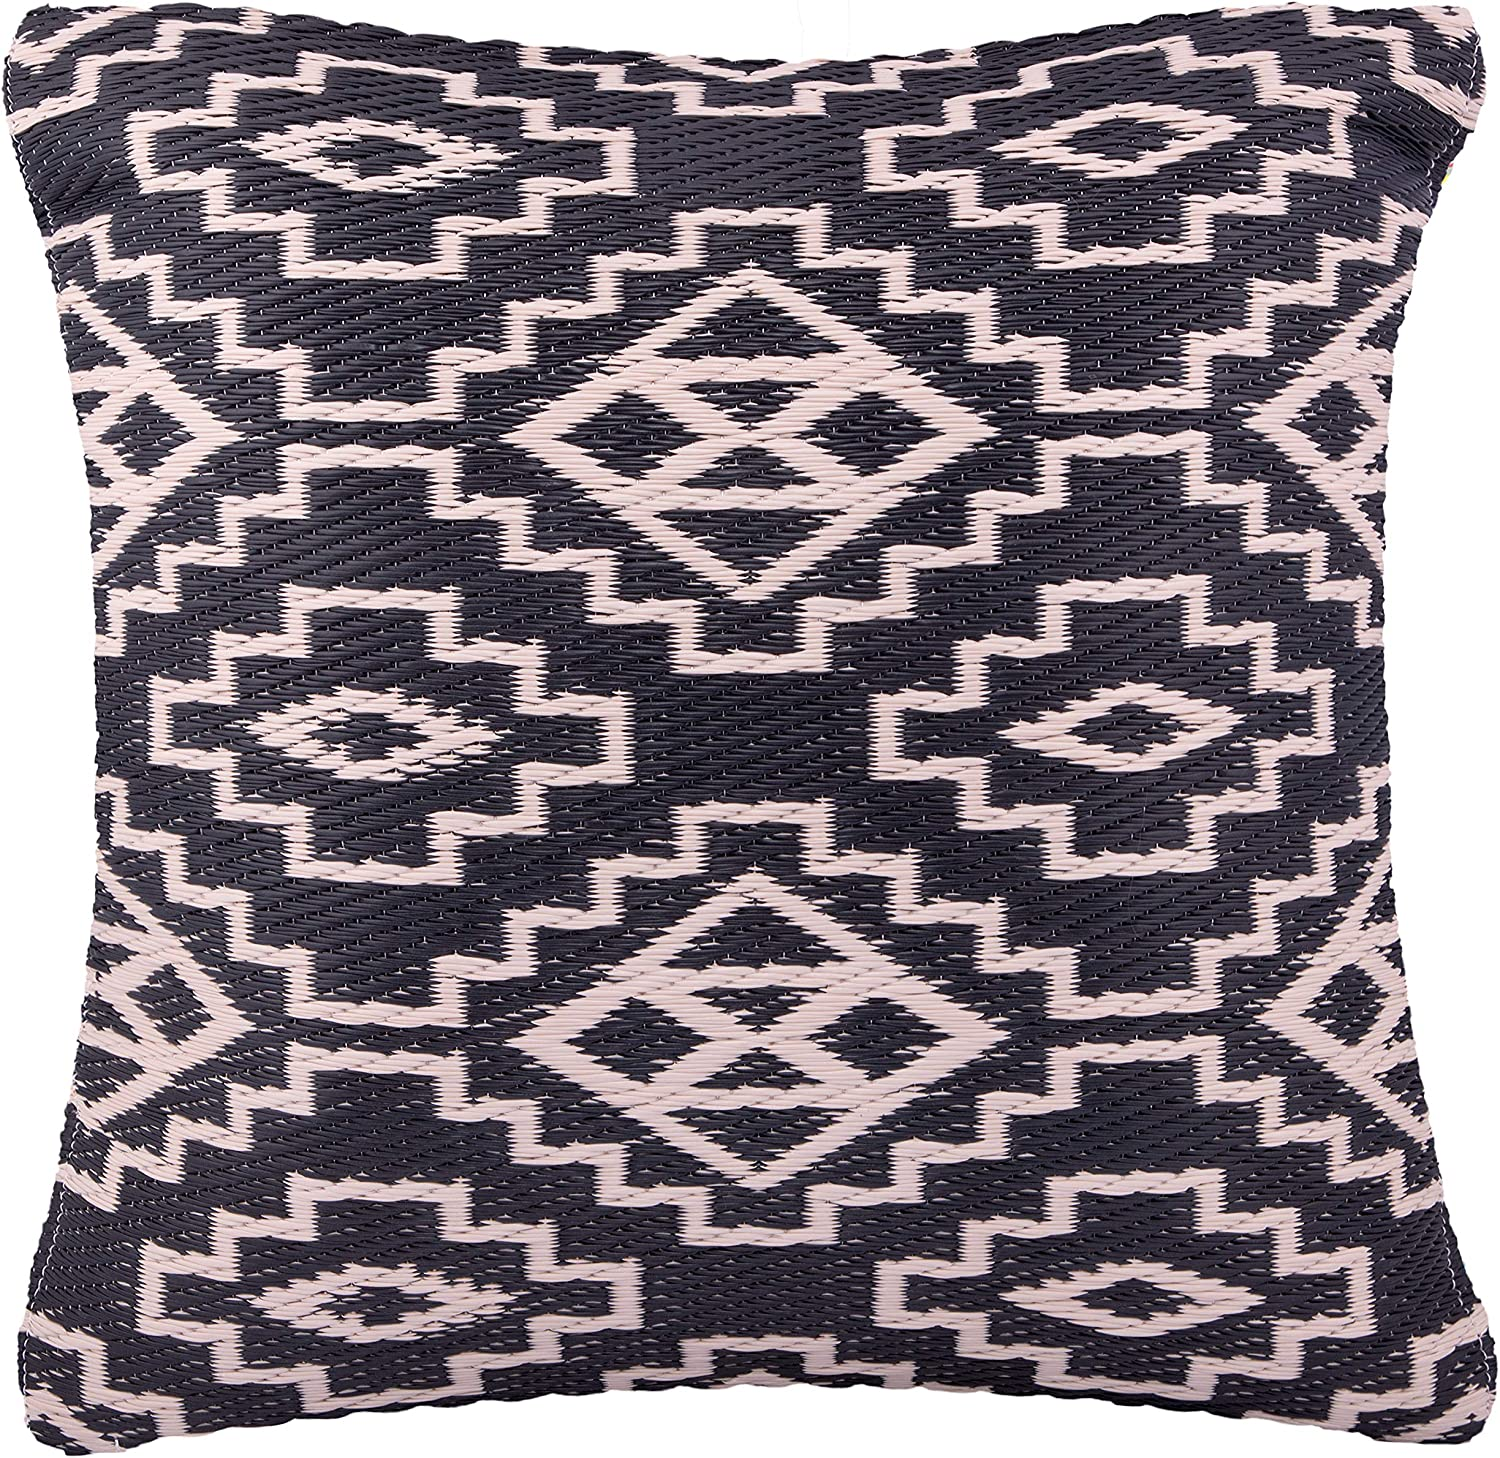 Fab Max 59% Max 52% OFF OFF Habitat Outdoor Accent Pillow Recyc Weather Resistant UV